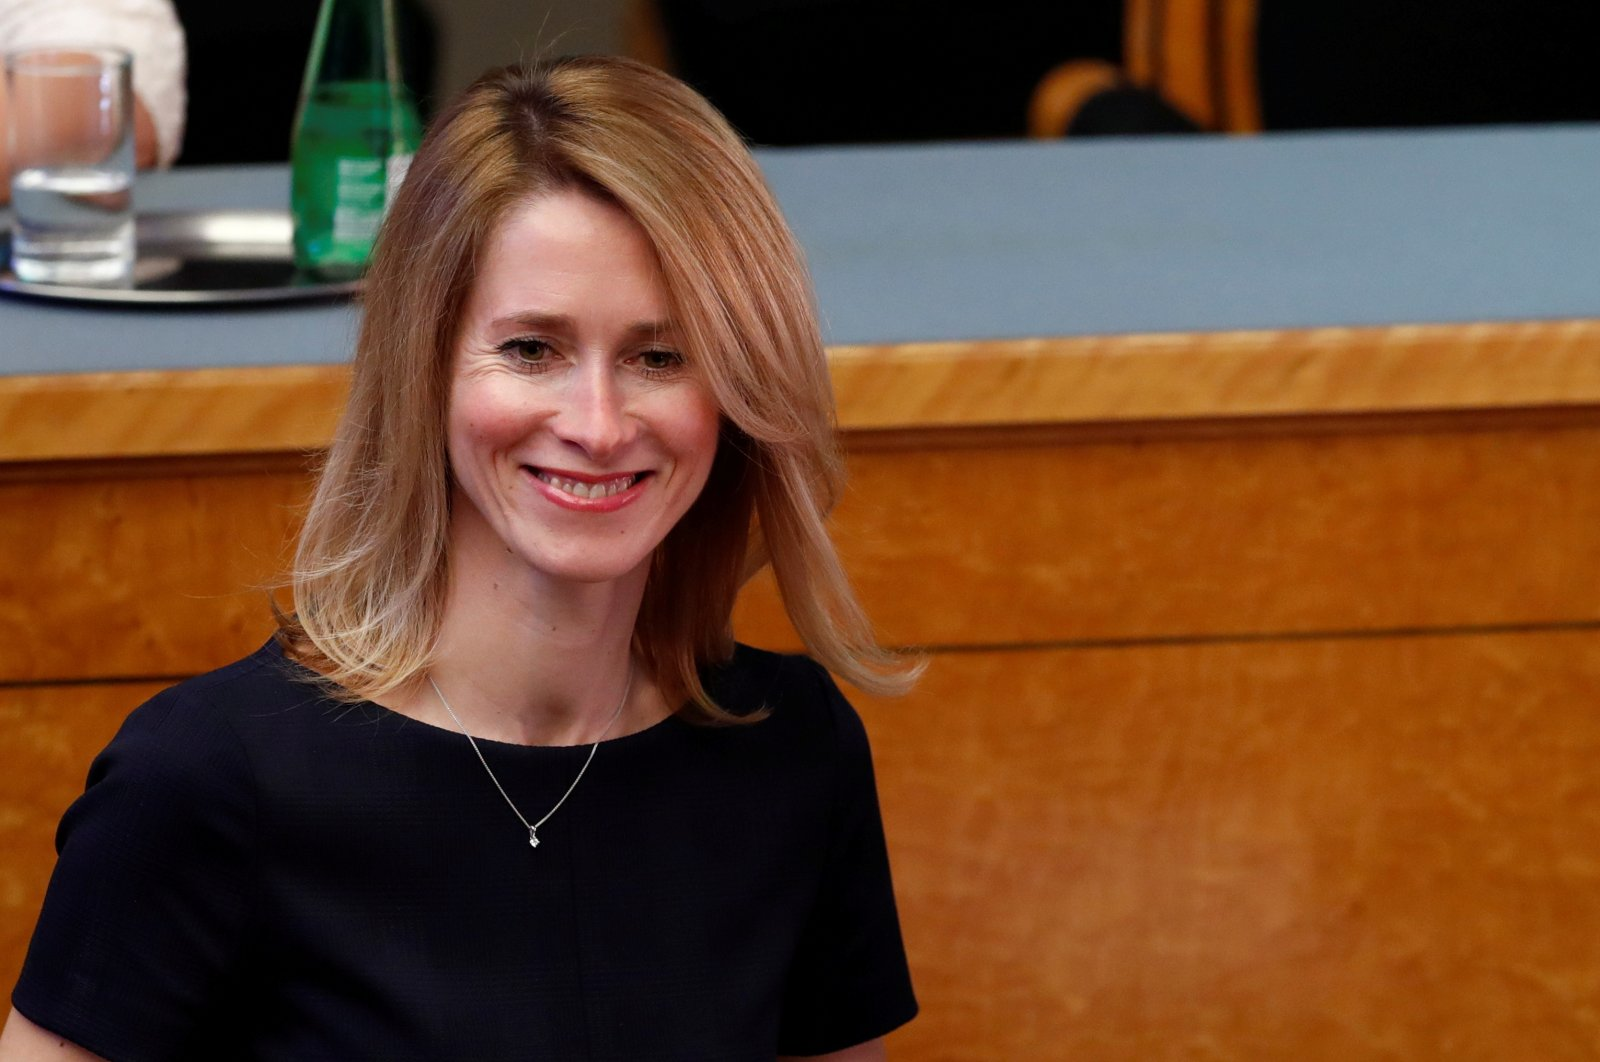 Estonia's pro-business opposition leader Kaja Kallas attends the opening session of the newly elected Estonian Parliament in Tallinn, Estonia, April 4, 2019. (Reuters Photo)